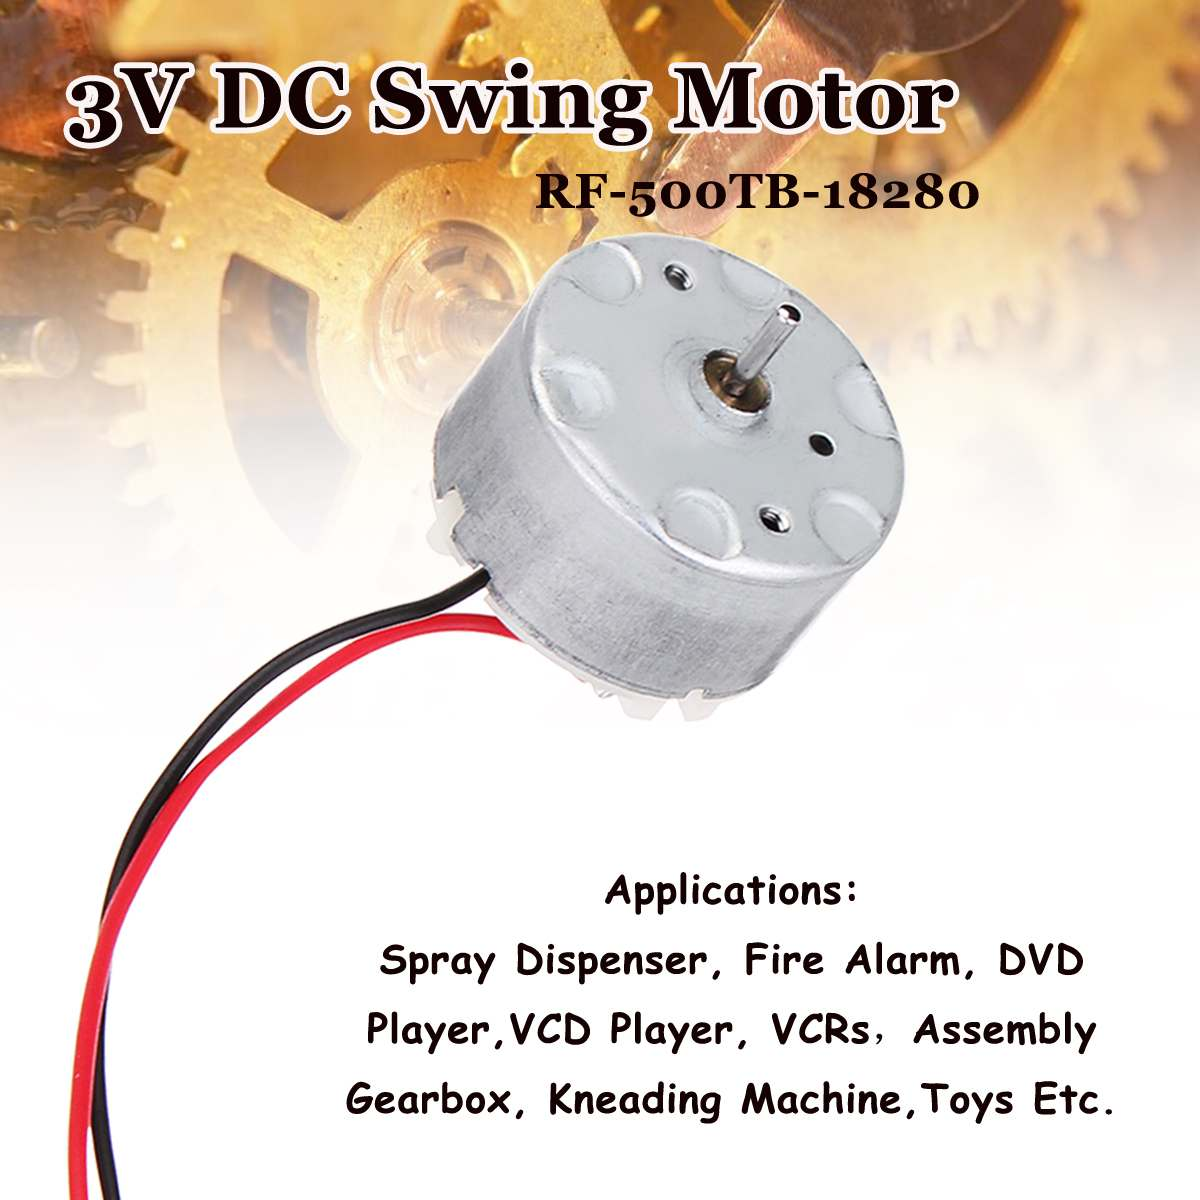 RF-500 DC 3V-6V 2800RPM Motor Cradle Swing Mini Electric DC Motor RF-500TB-18280 title=